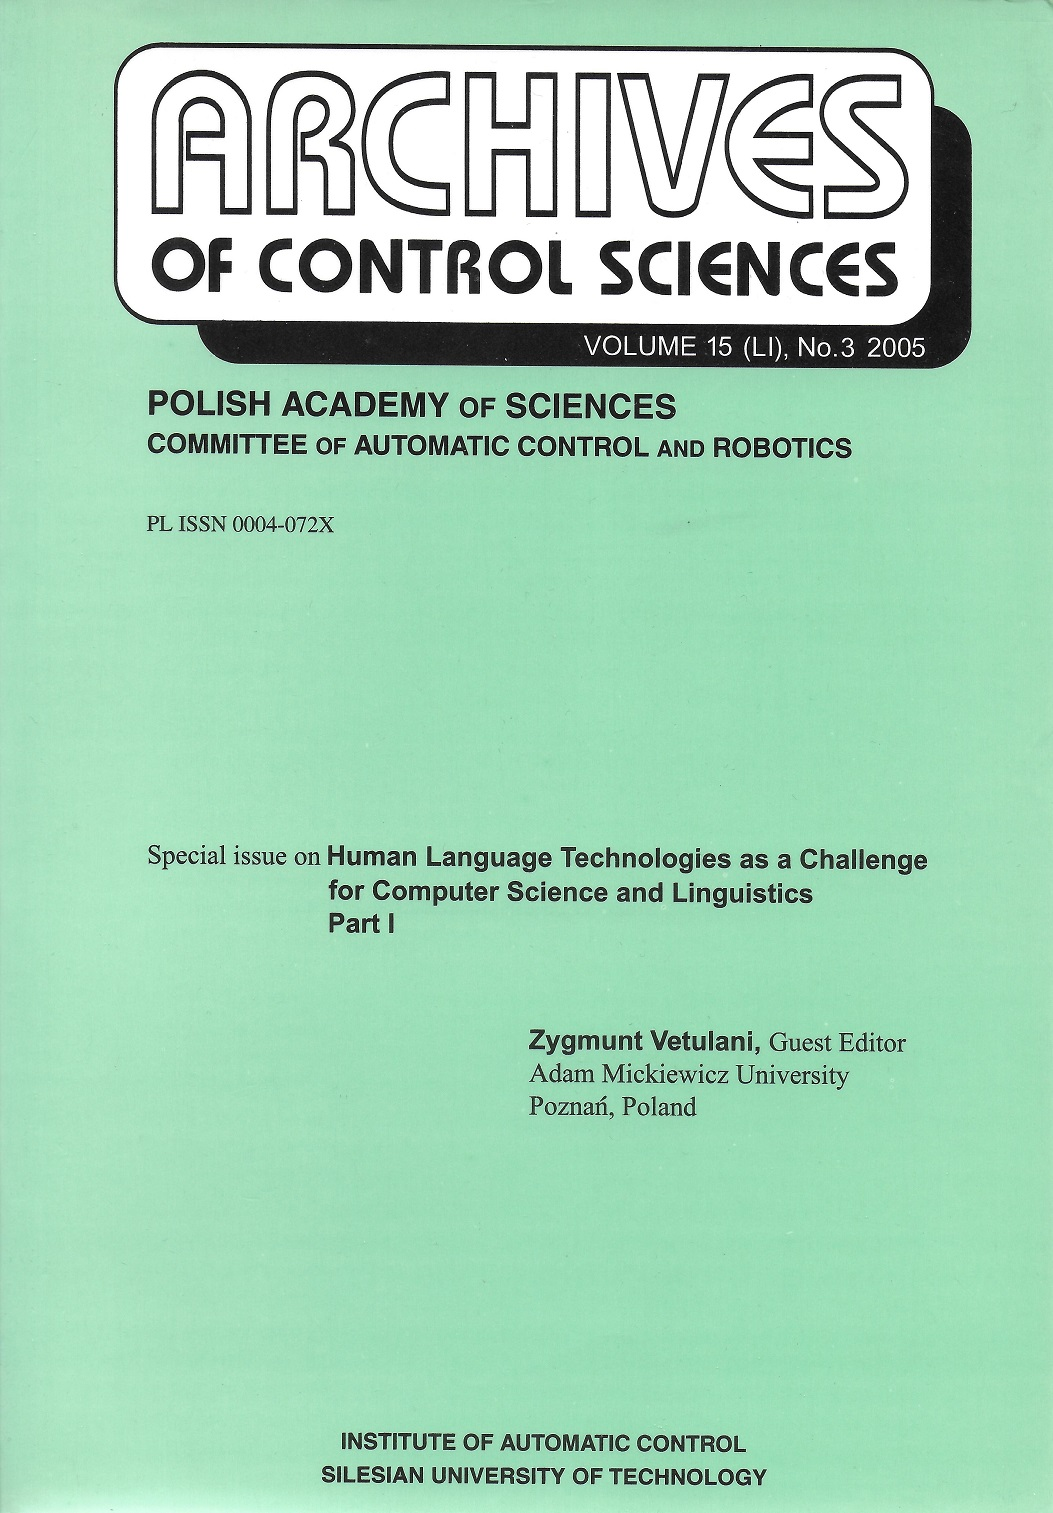 Archives Of Control Sciences